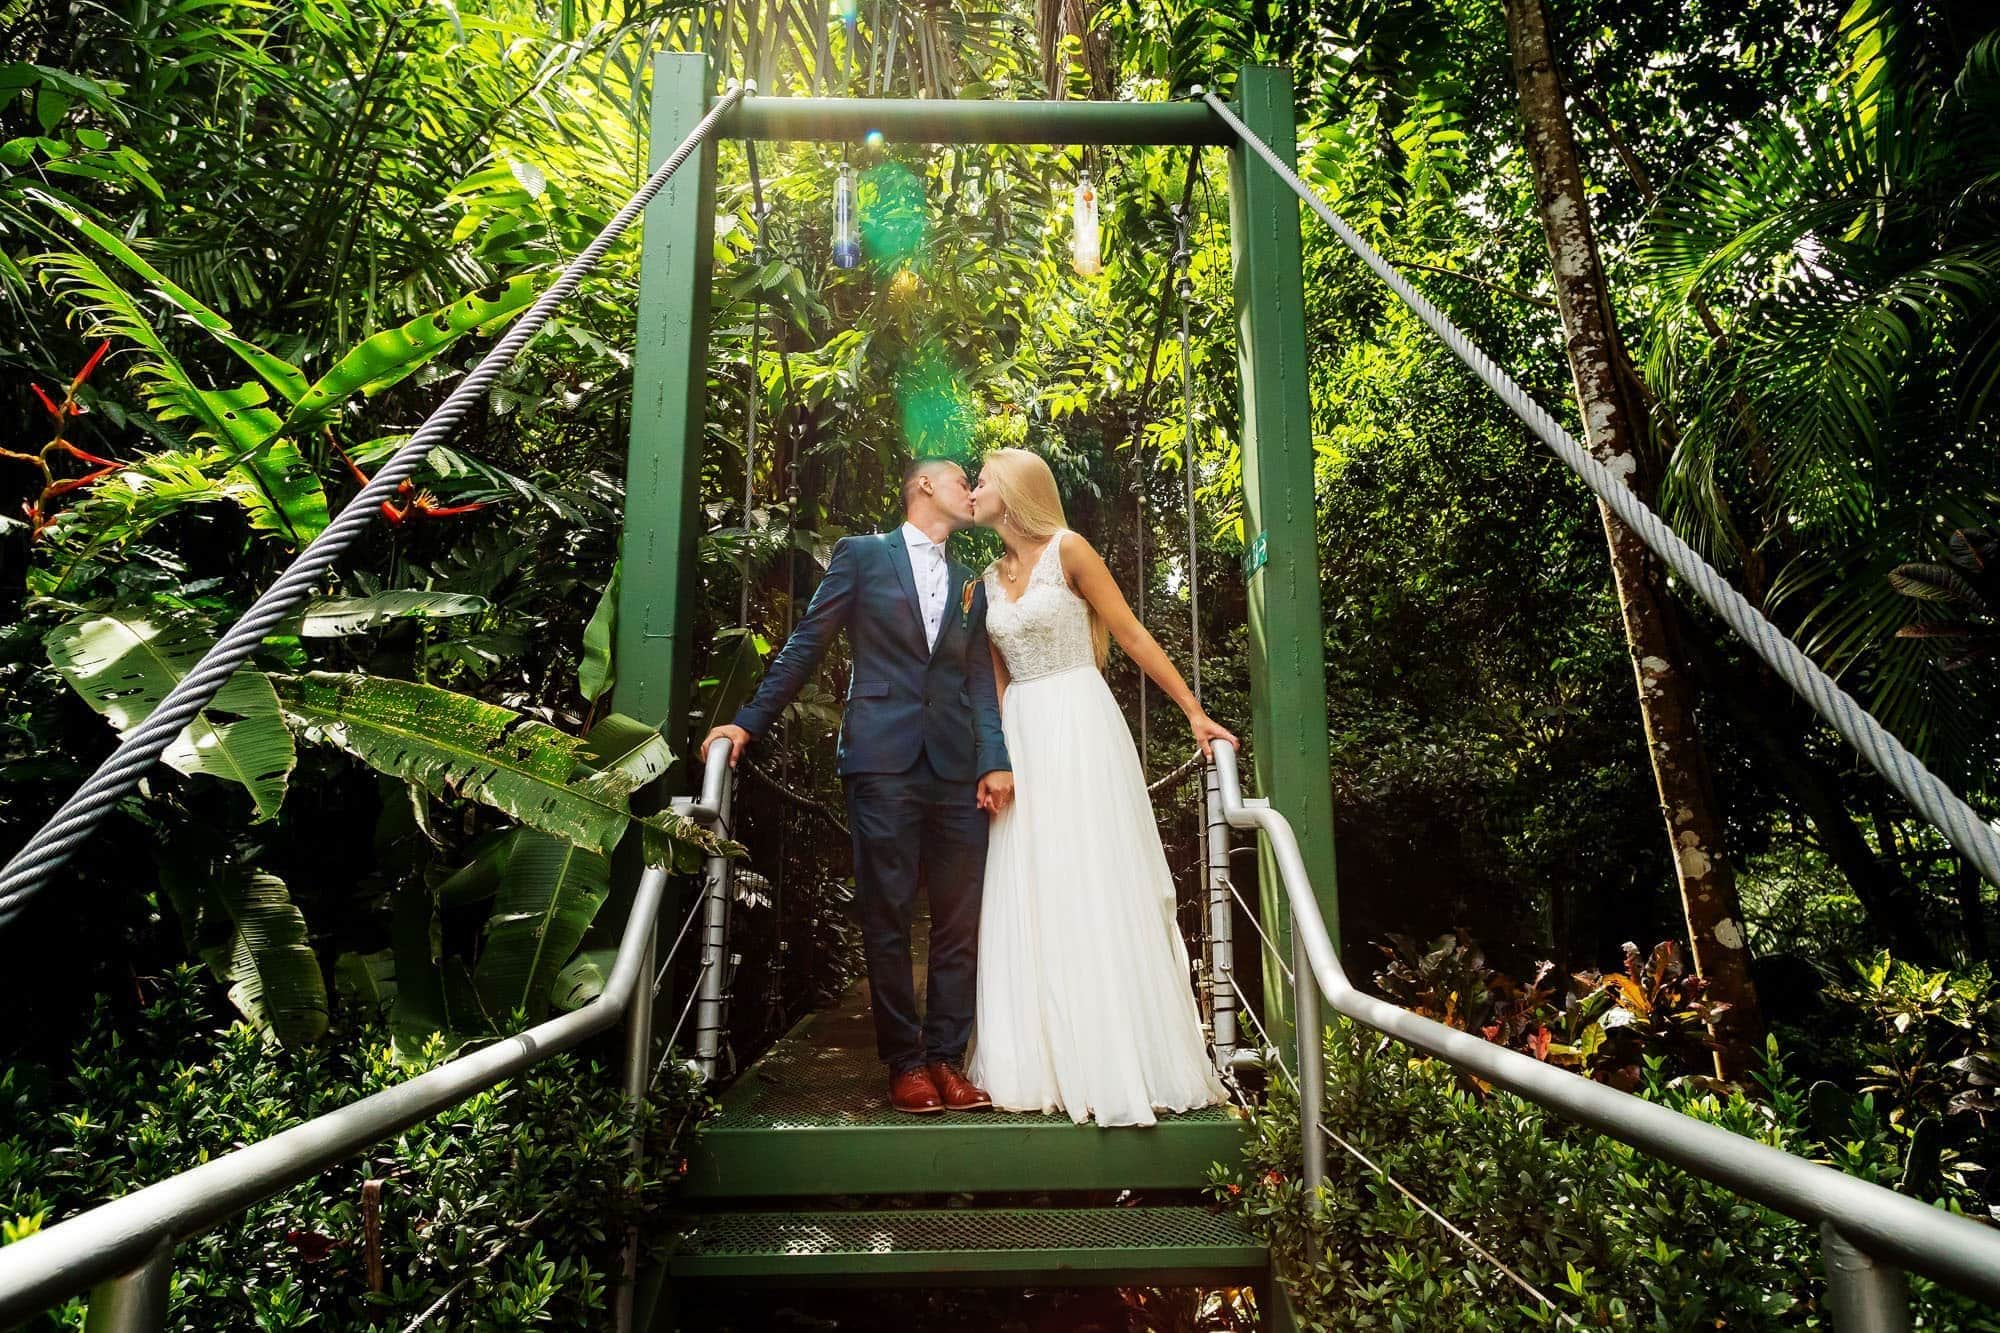 Sharing a kiss on the suspension bridge at Costa Verde